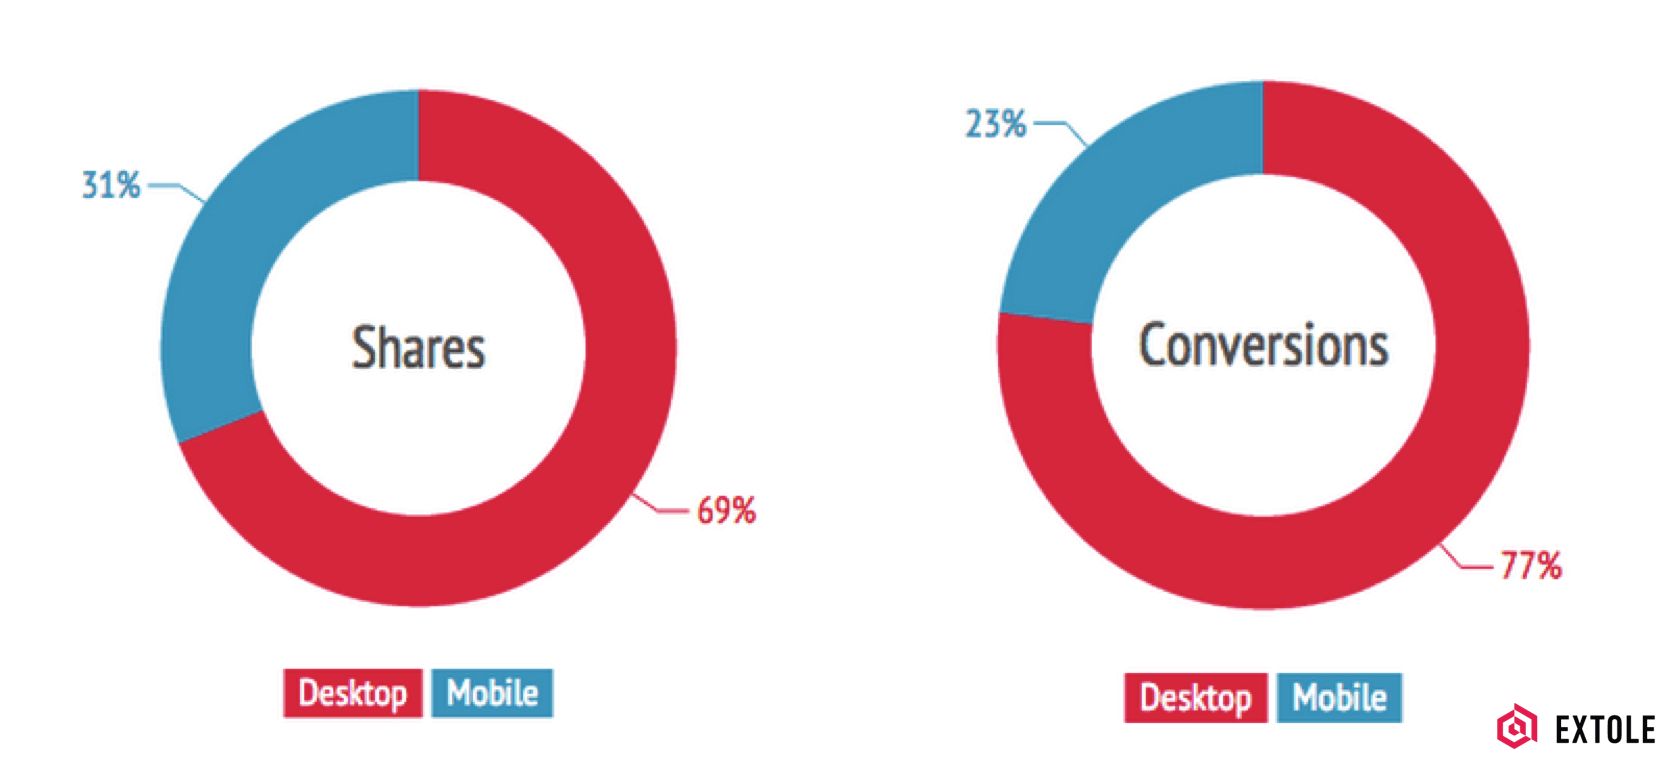 Shares and conversions, desktop vs mobile